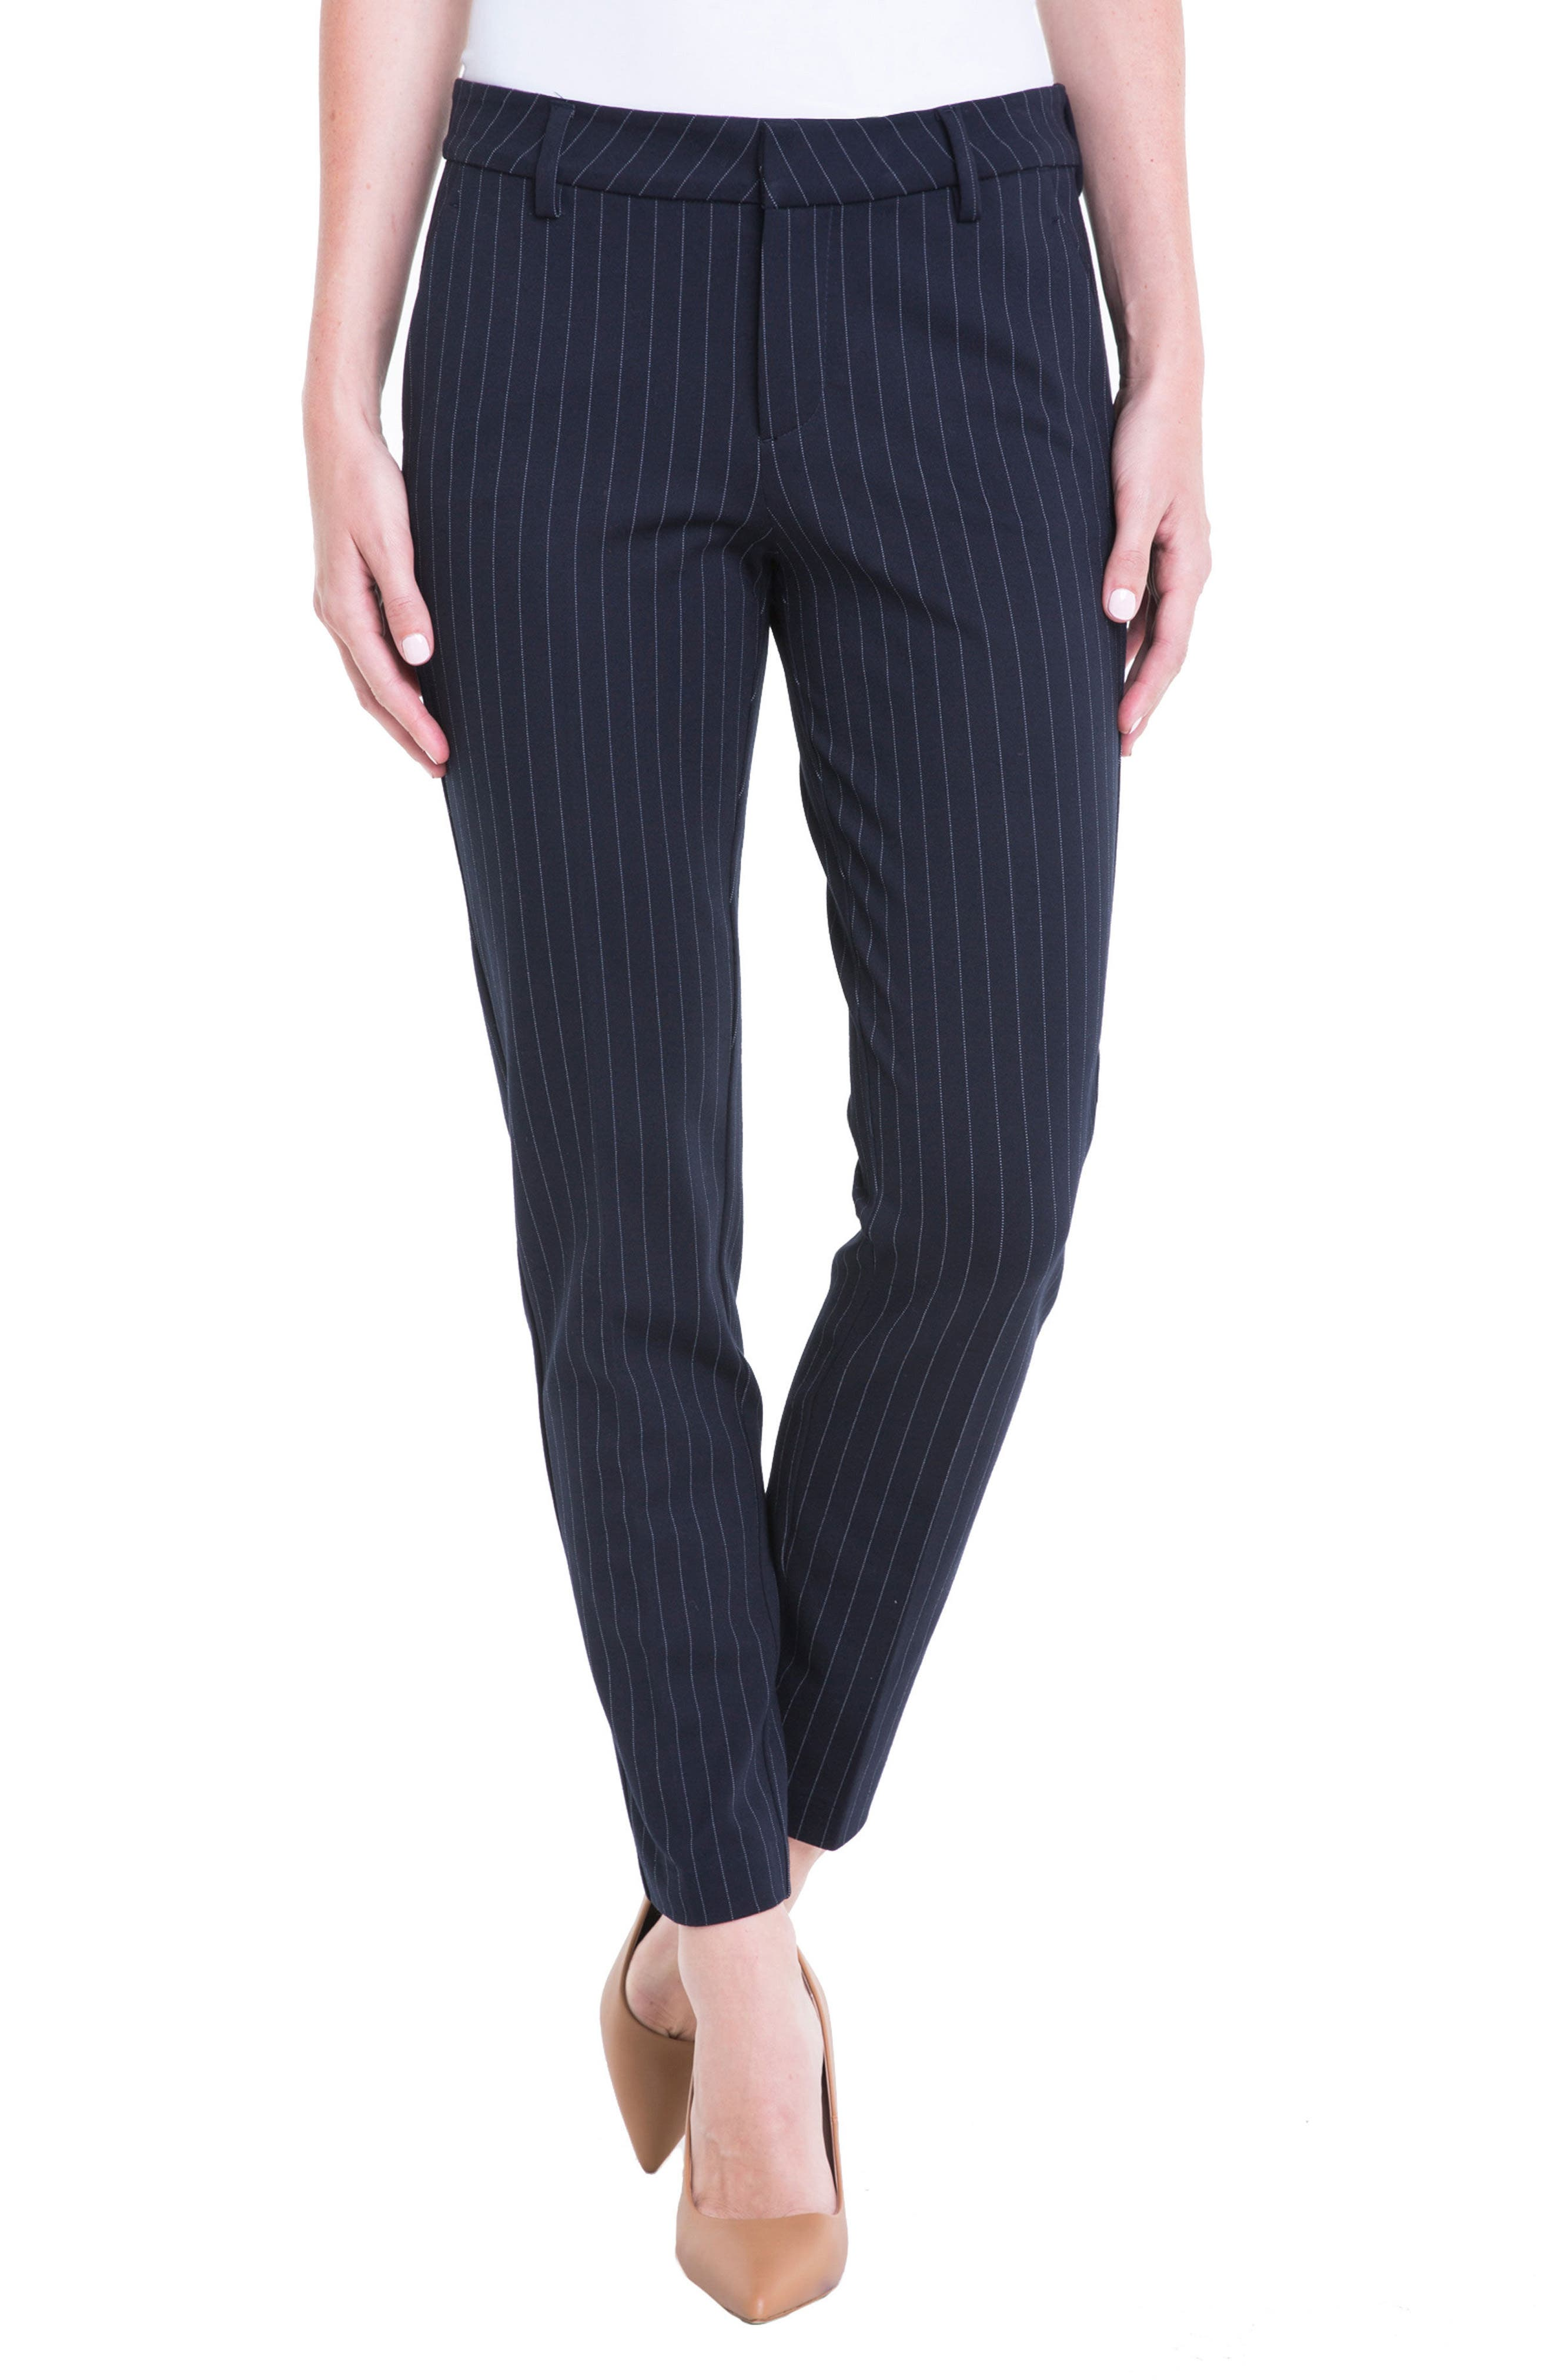 Liverpool Jeans Company Kelsey Knit Pinstripe Trousers